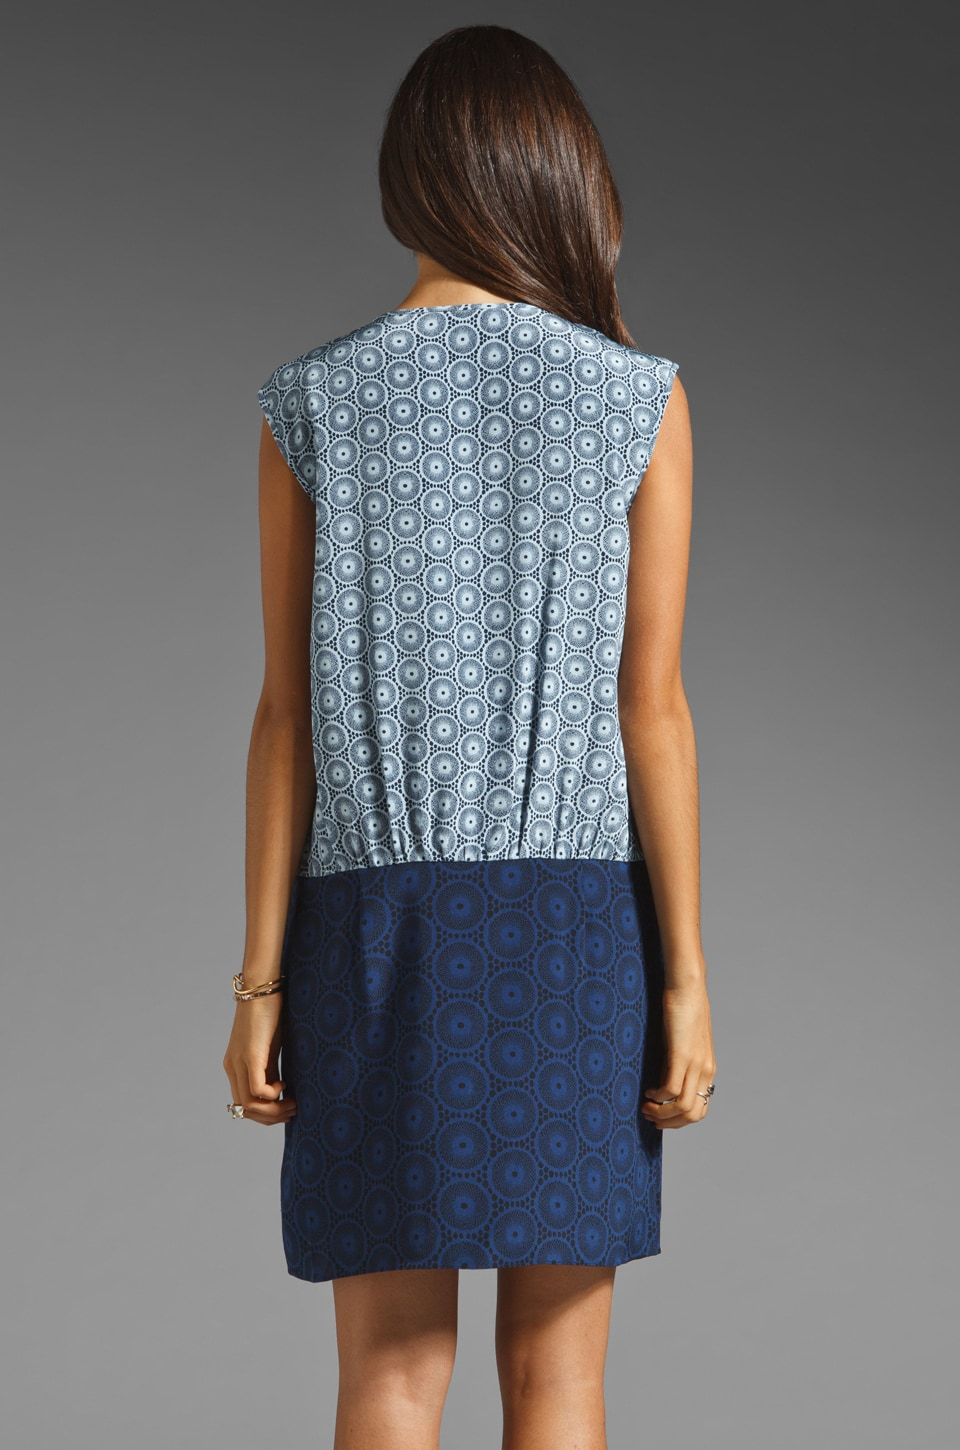 Tibi Kaleidoscope V-Neck Dress in Powder Blue/Navy Combo